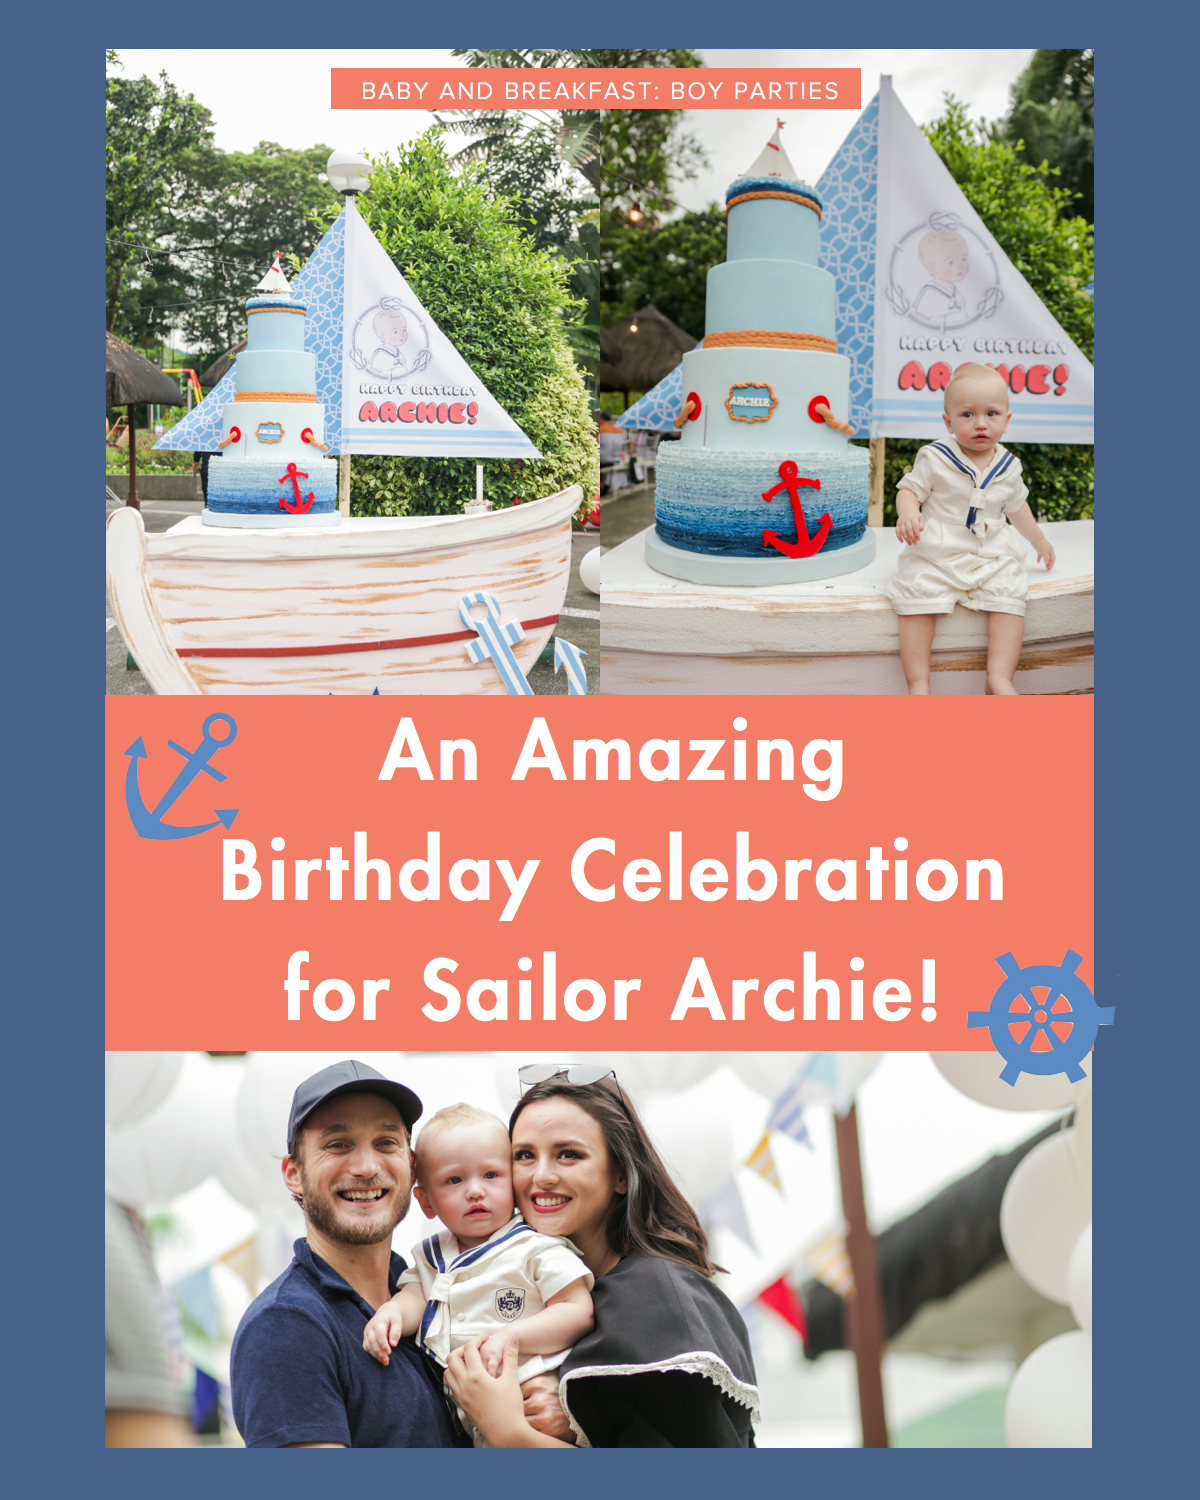 Baby and Breakfast: Boy Parties An Amazing Birthday Celebration for Sailor Archie!